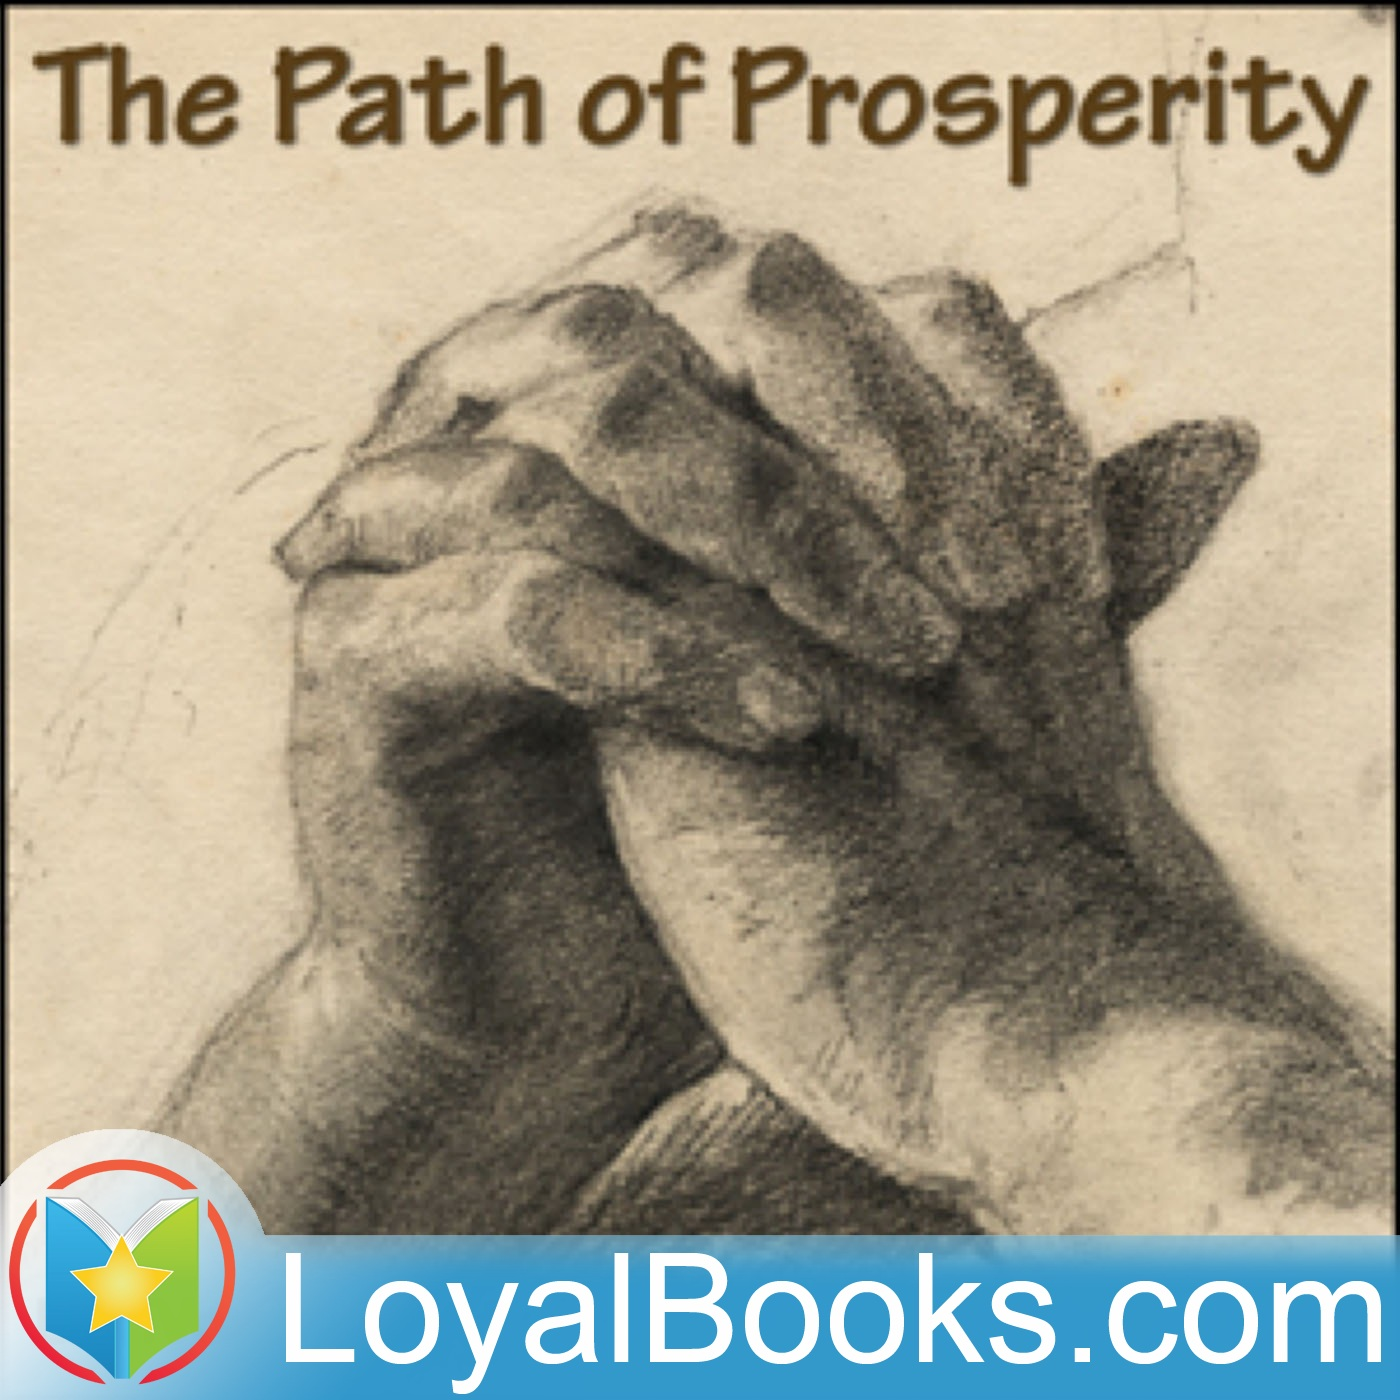 <![CDATA[The Path of Prosperity by James Allen]]>